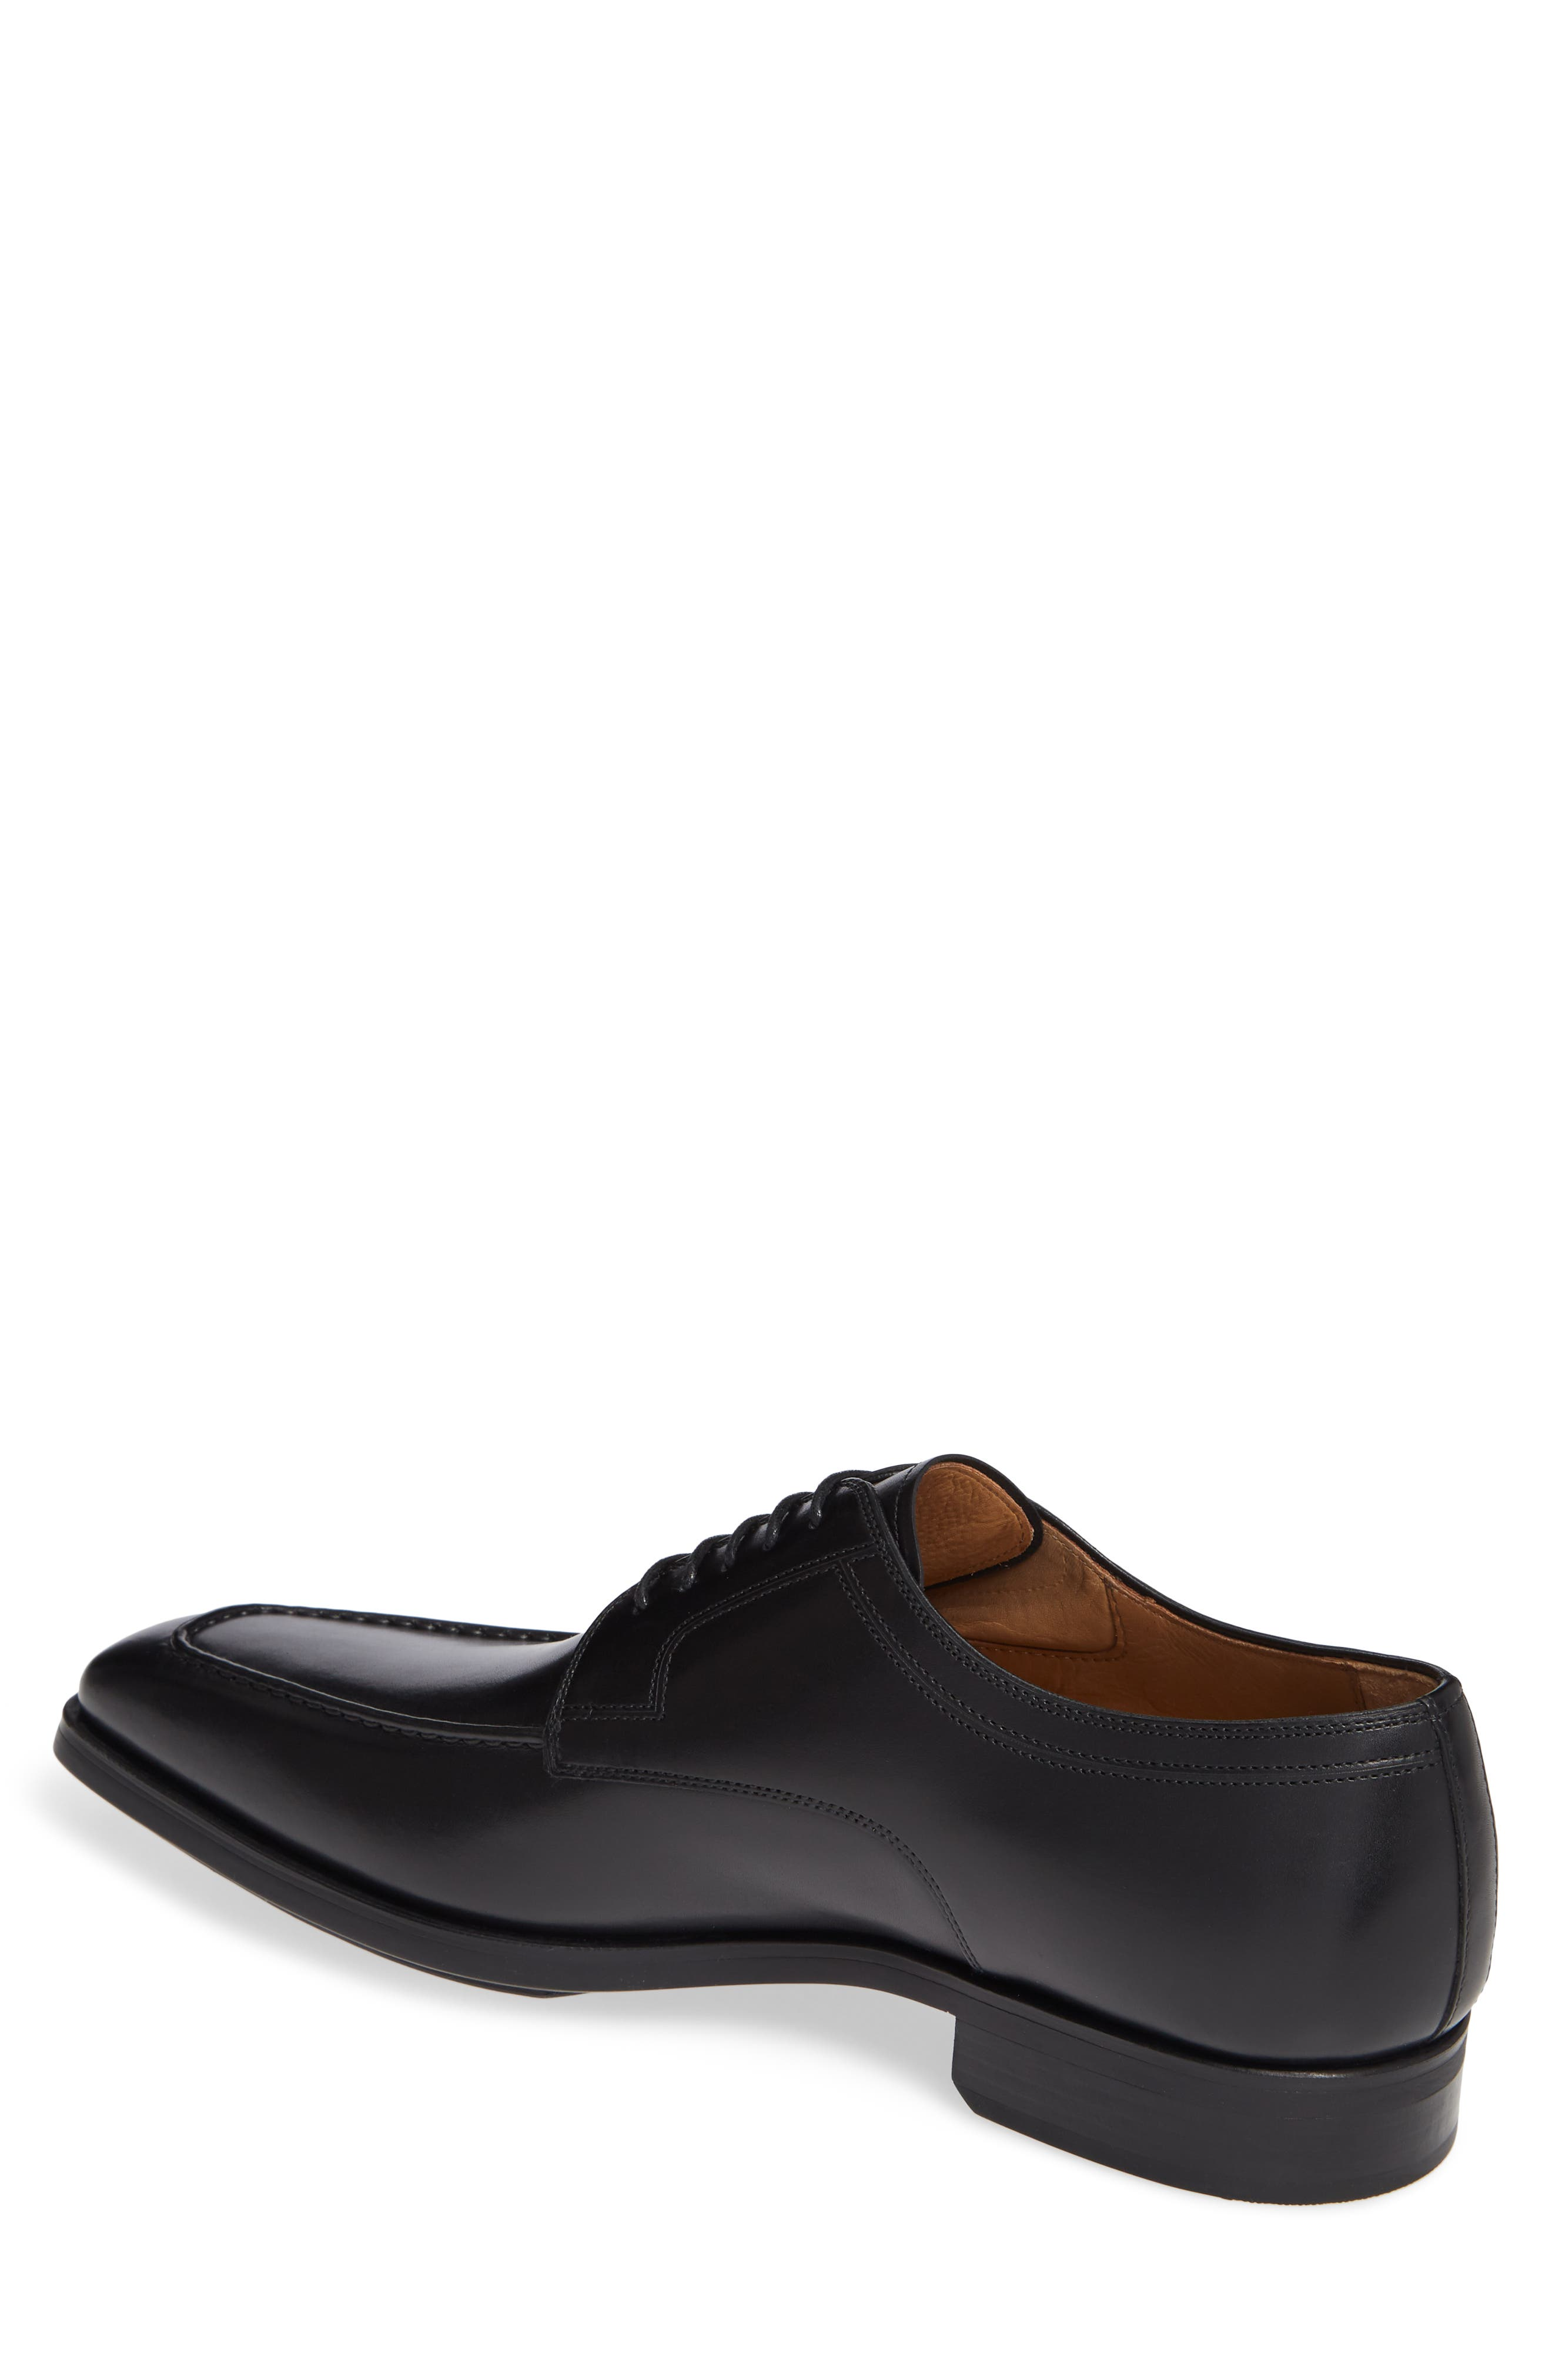 MAGNANNI, Romelo Diversa Apron Toe Derby, Alternate thumbnail 2, color, BLACK LEATHER